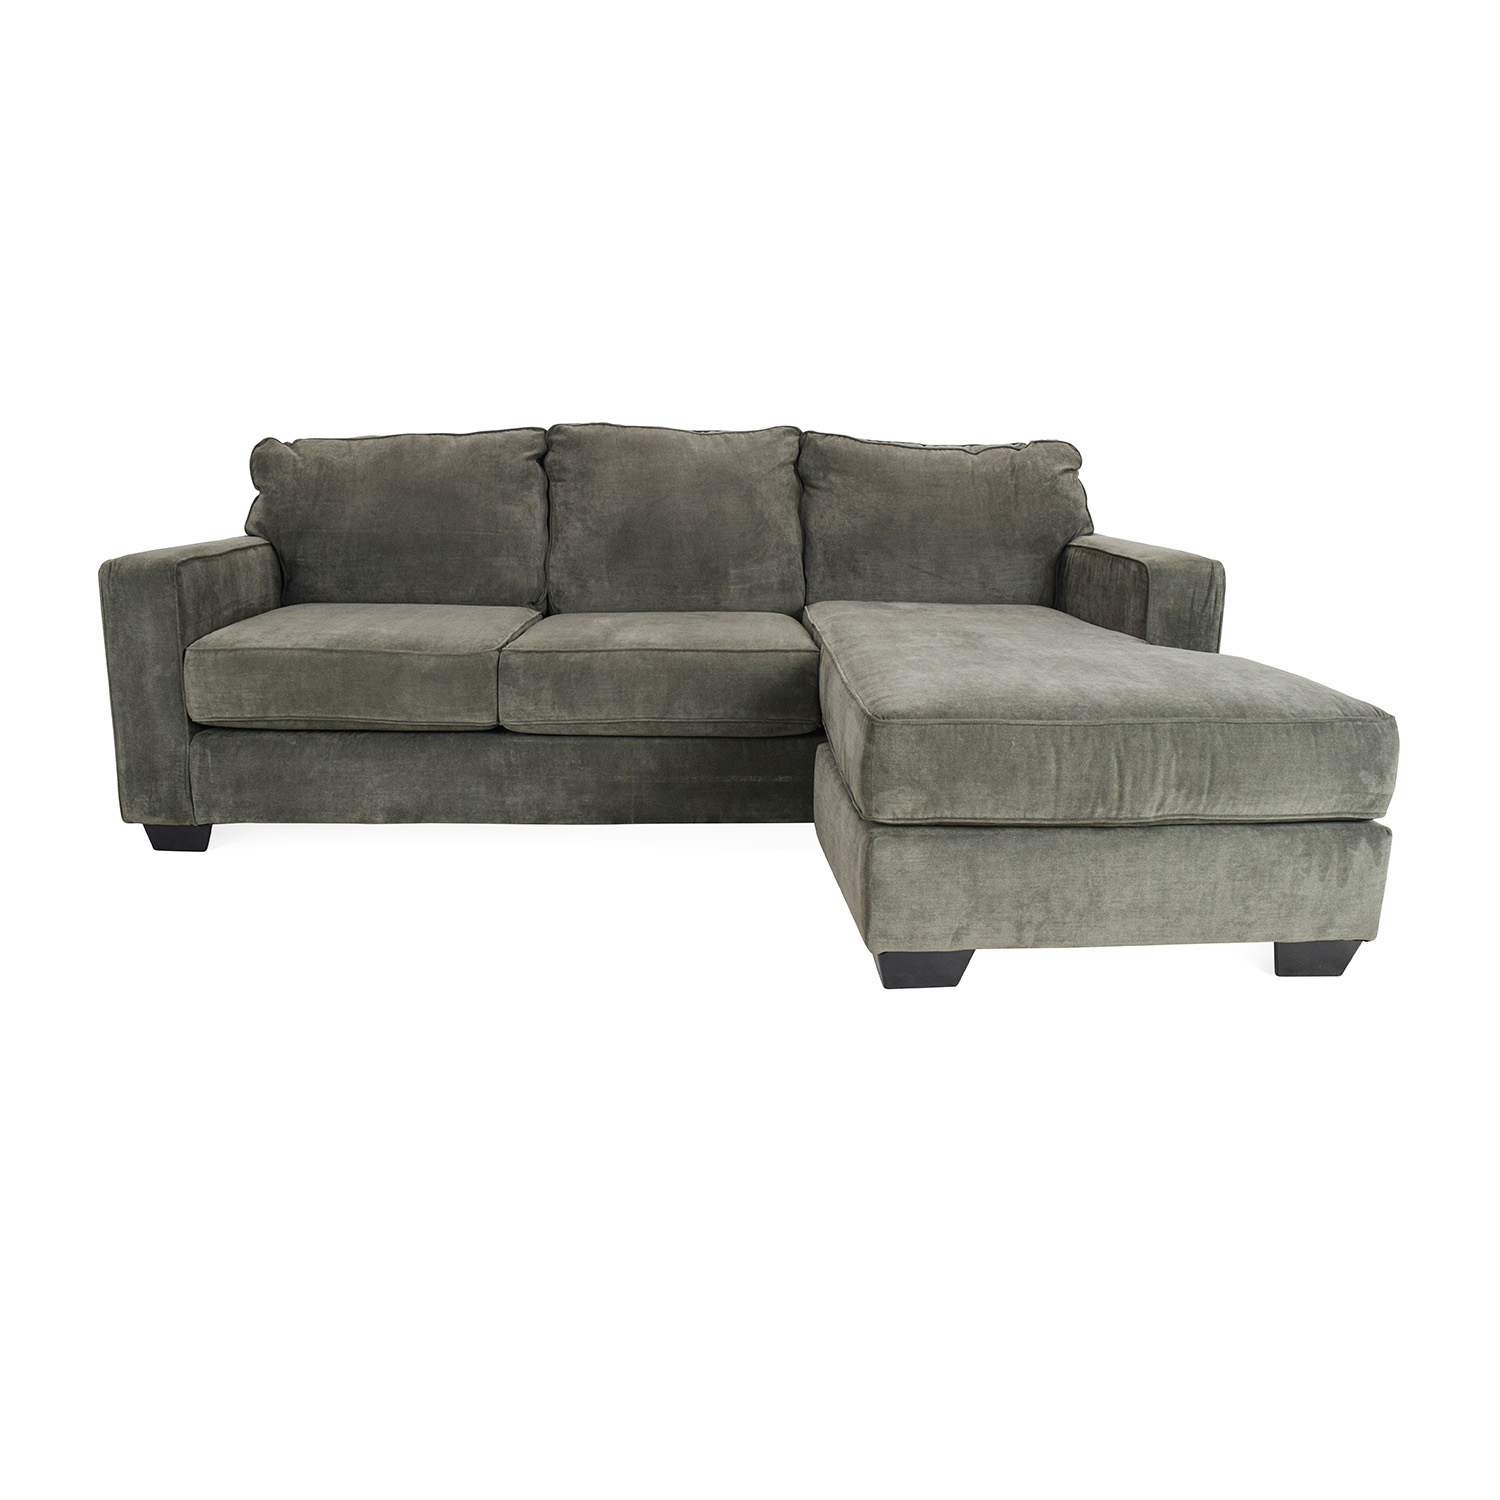 Jennifer Convertibles Sectional Sofa